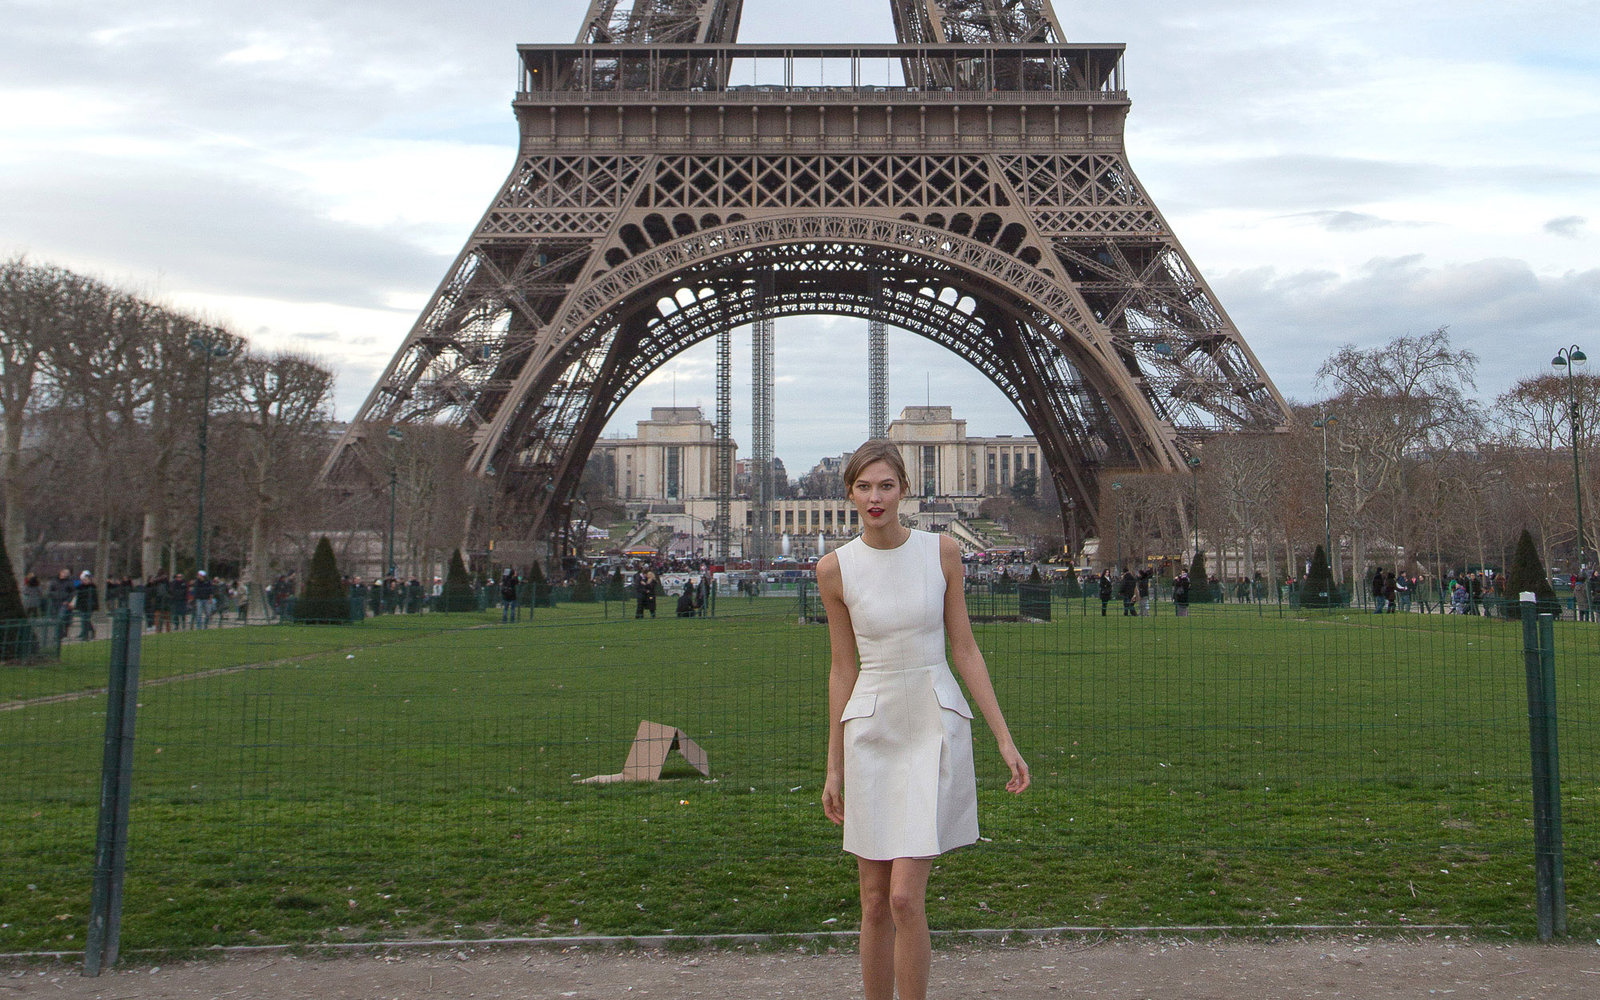 PARIS, FRANCE - JANUARY 18:  (EXCLUSIVE COVERAGE) Model Karlie Kloss sighted at the Eiffel tower on January 18, 2014 in Paris, France.  (Photo by Marc Piasecki/FilmMagic)